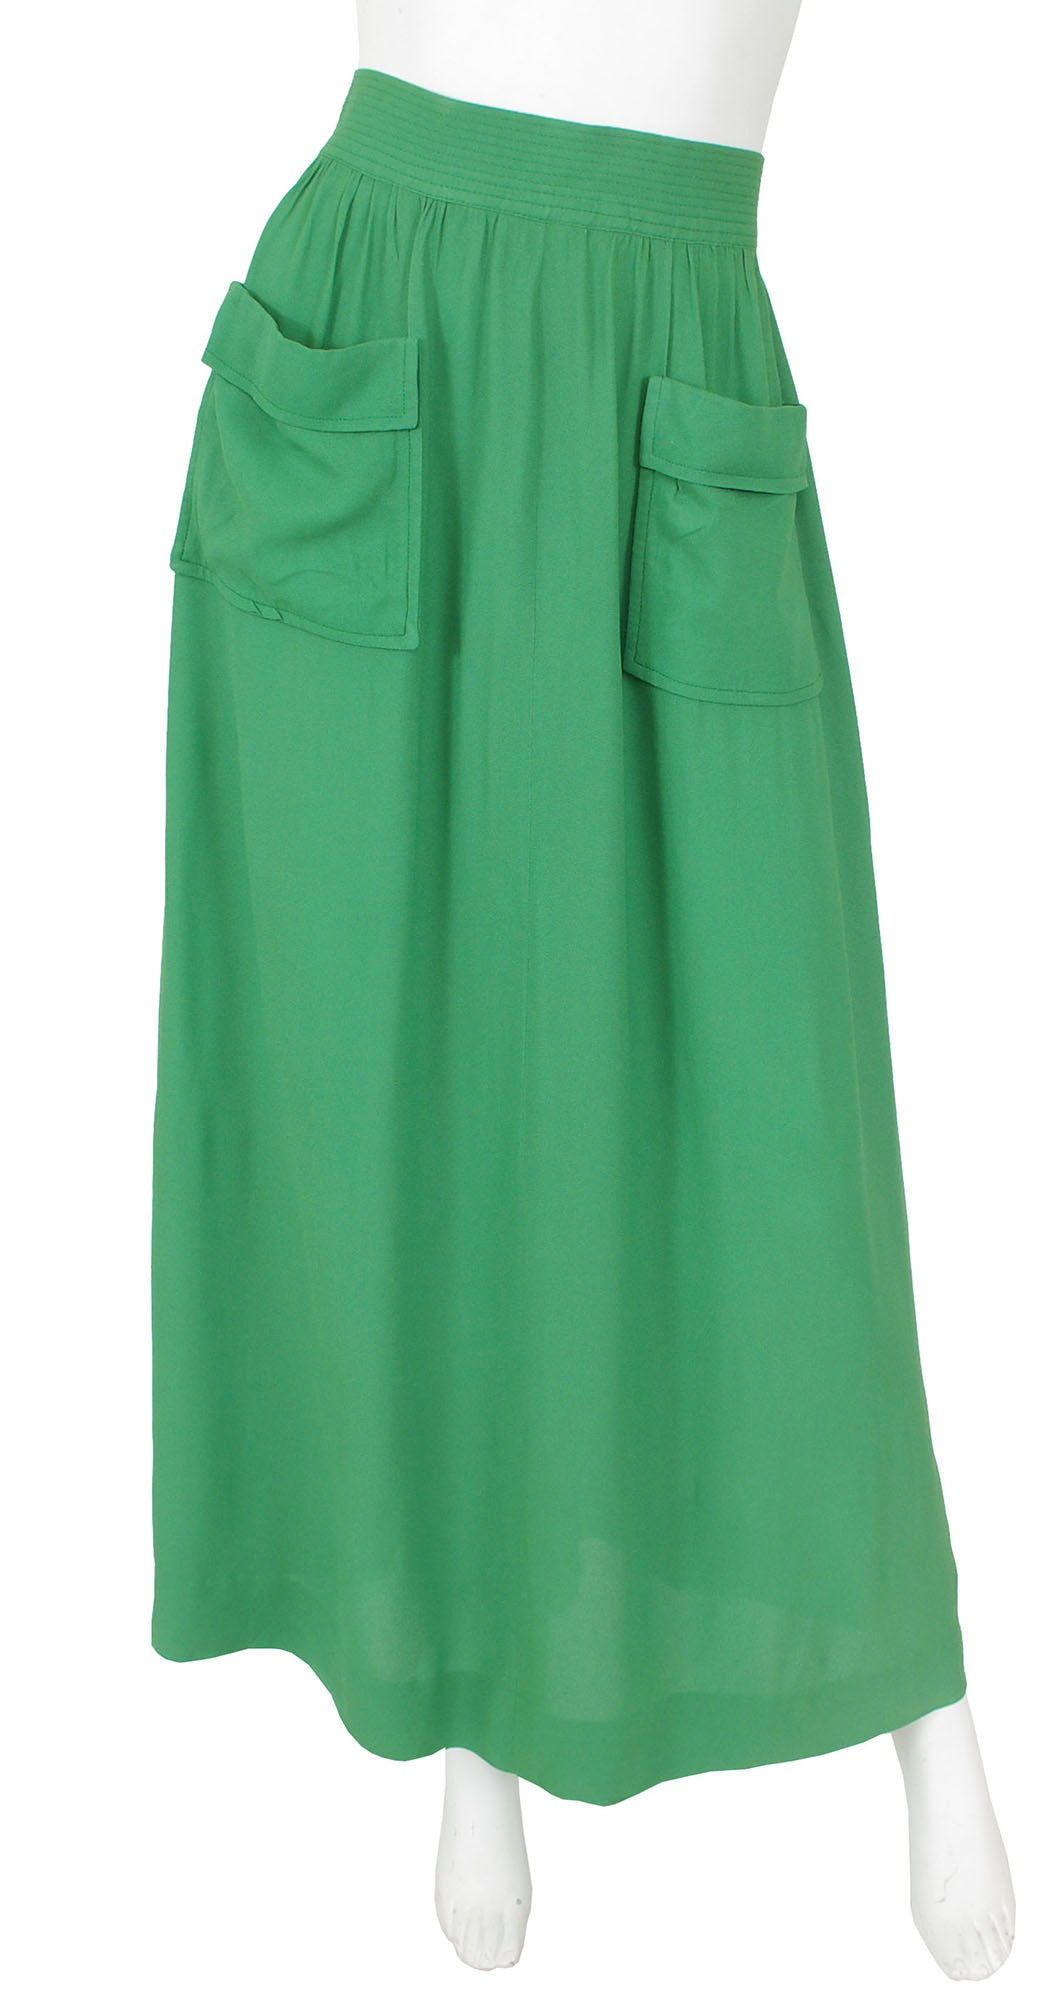 Early 1970's Green Crepe Maxi Skirt